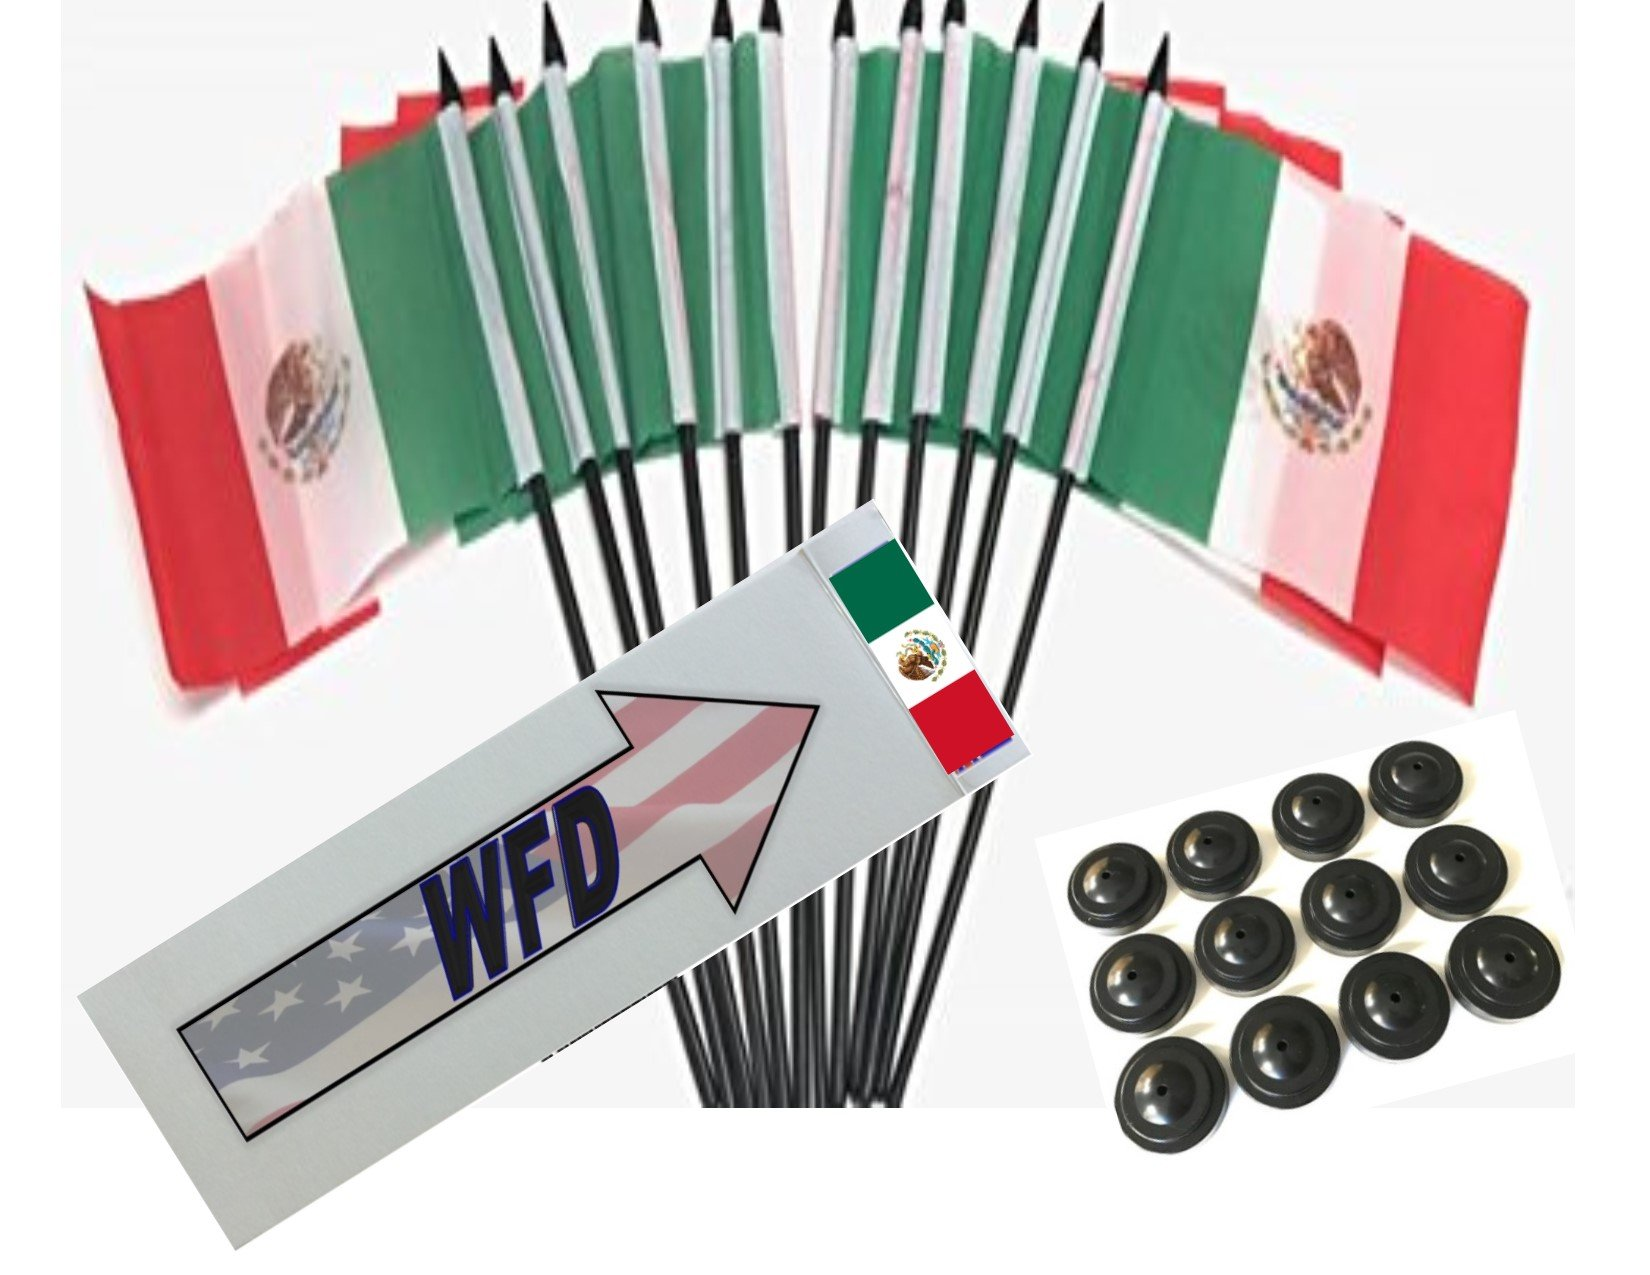 Box of 12 Mexico 4''x6'' Polyester Miniature Desk & Little Table Flags, 4x6 Mexican Small Mini Hand Waving Stick Flags with 12 Flag Bases (Stands)